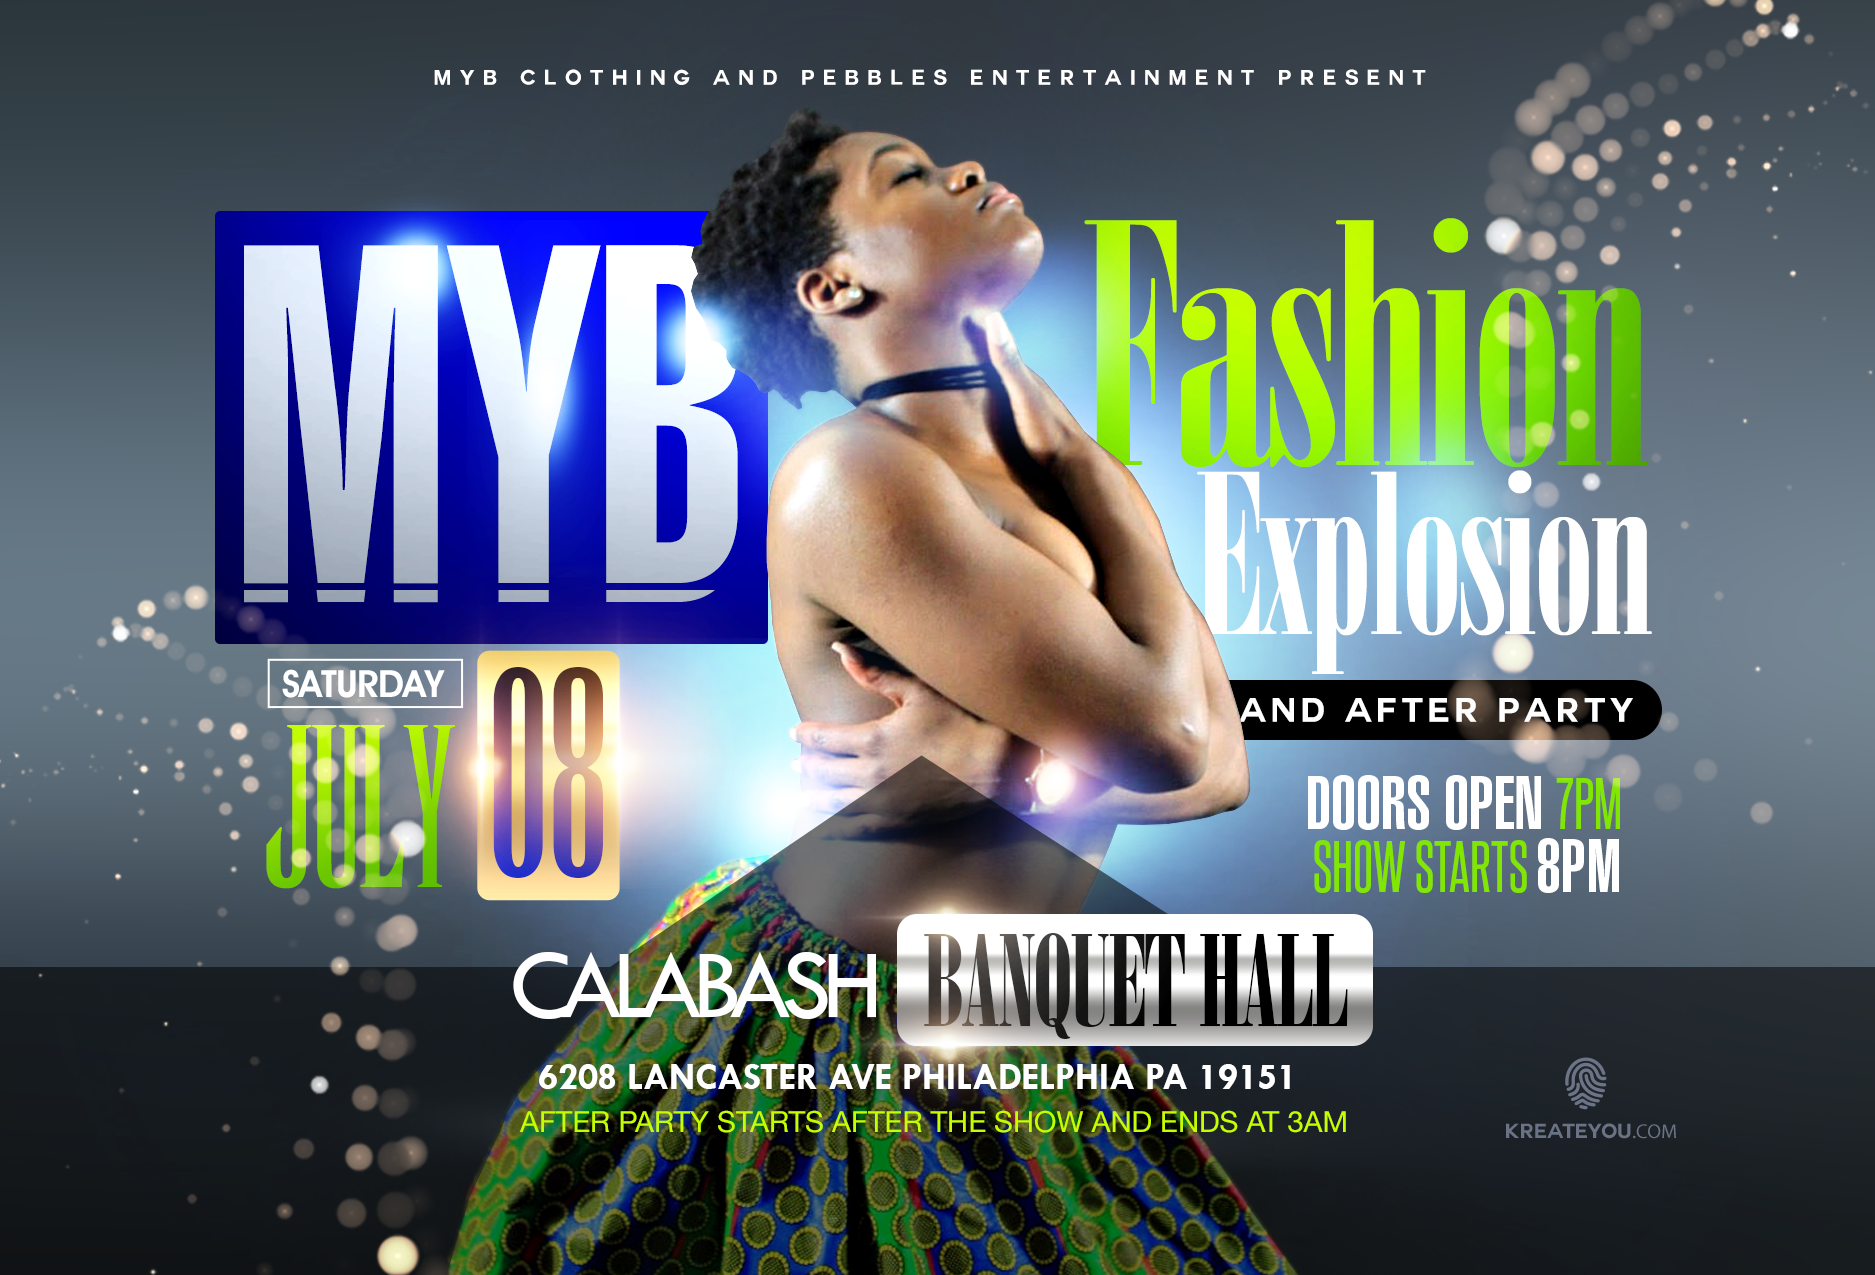 MYB Clothing Fashion Explosion and After Party. MYB Clothing Fashion Explosion and After Party